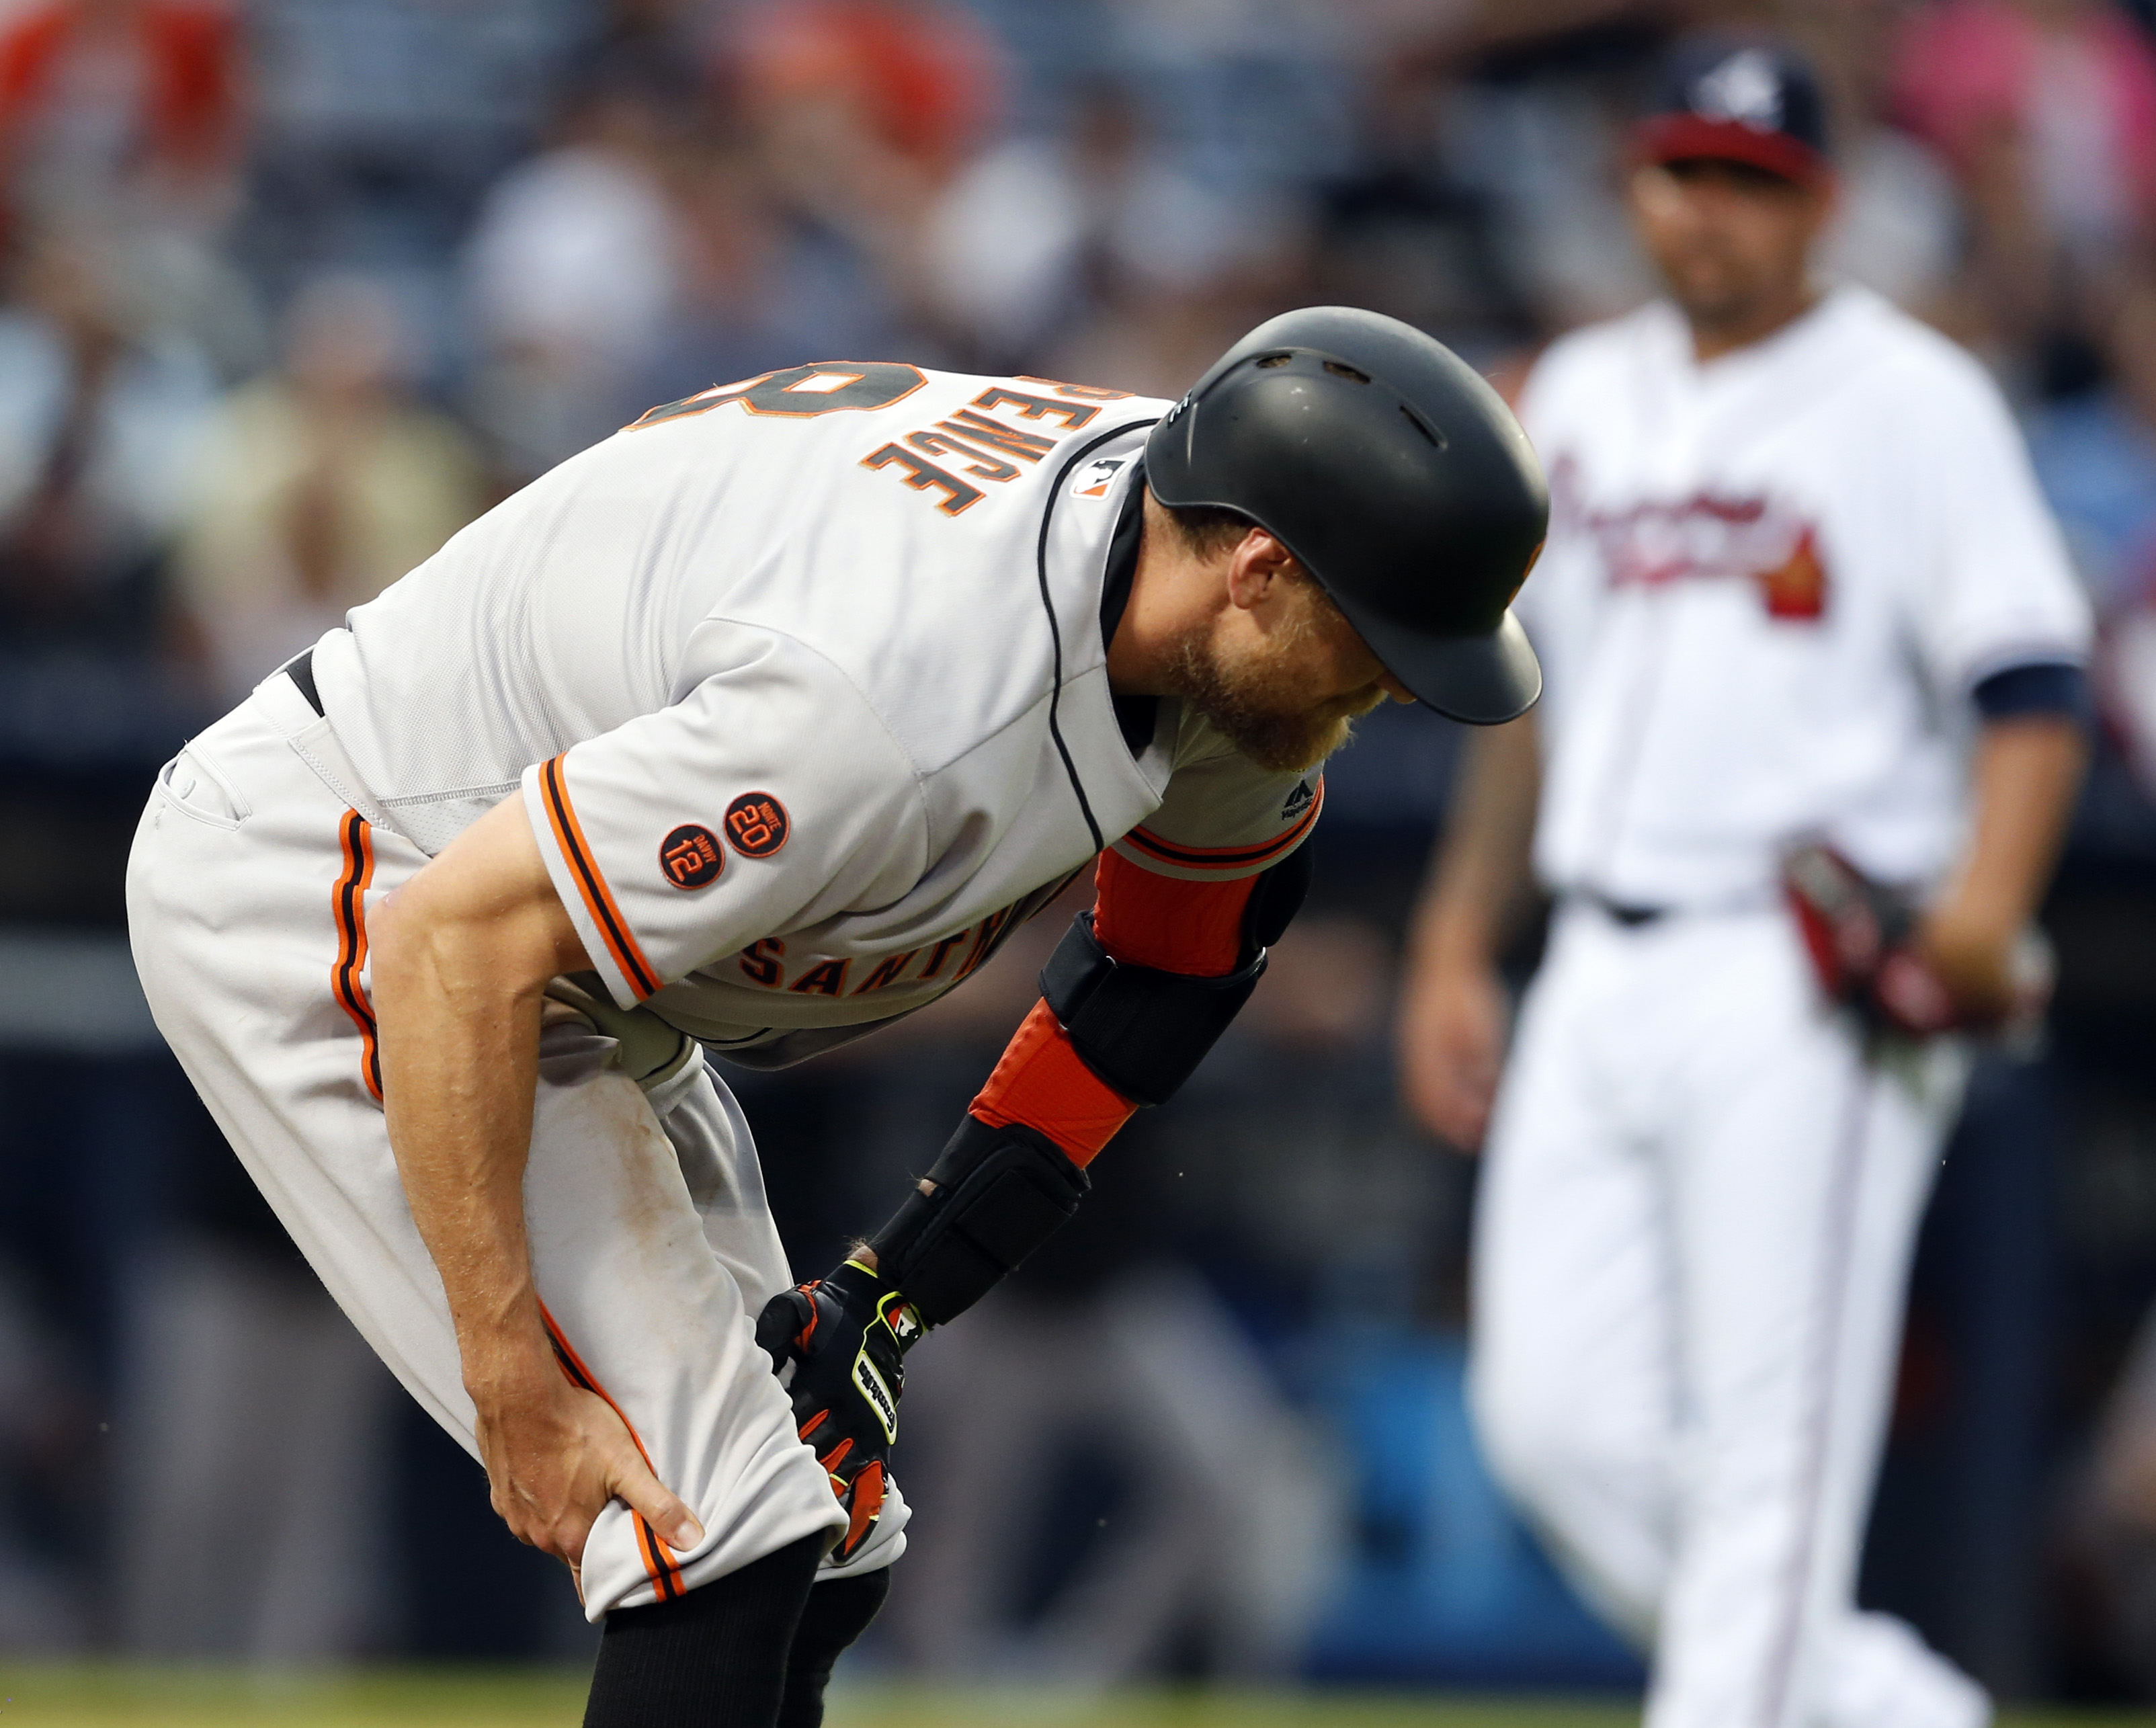 San Francisco Giants' Hunter Pence pulls up and grabs his leg as he ran to first during the fourth inning of a baseball game against the Atlanta Braves, Wednesday, June 1, 2016, in Atlanta. (AP Photo/Butch Dill)